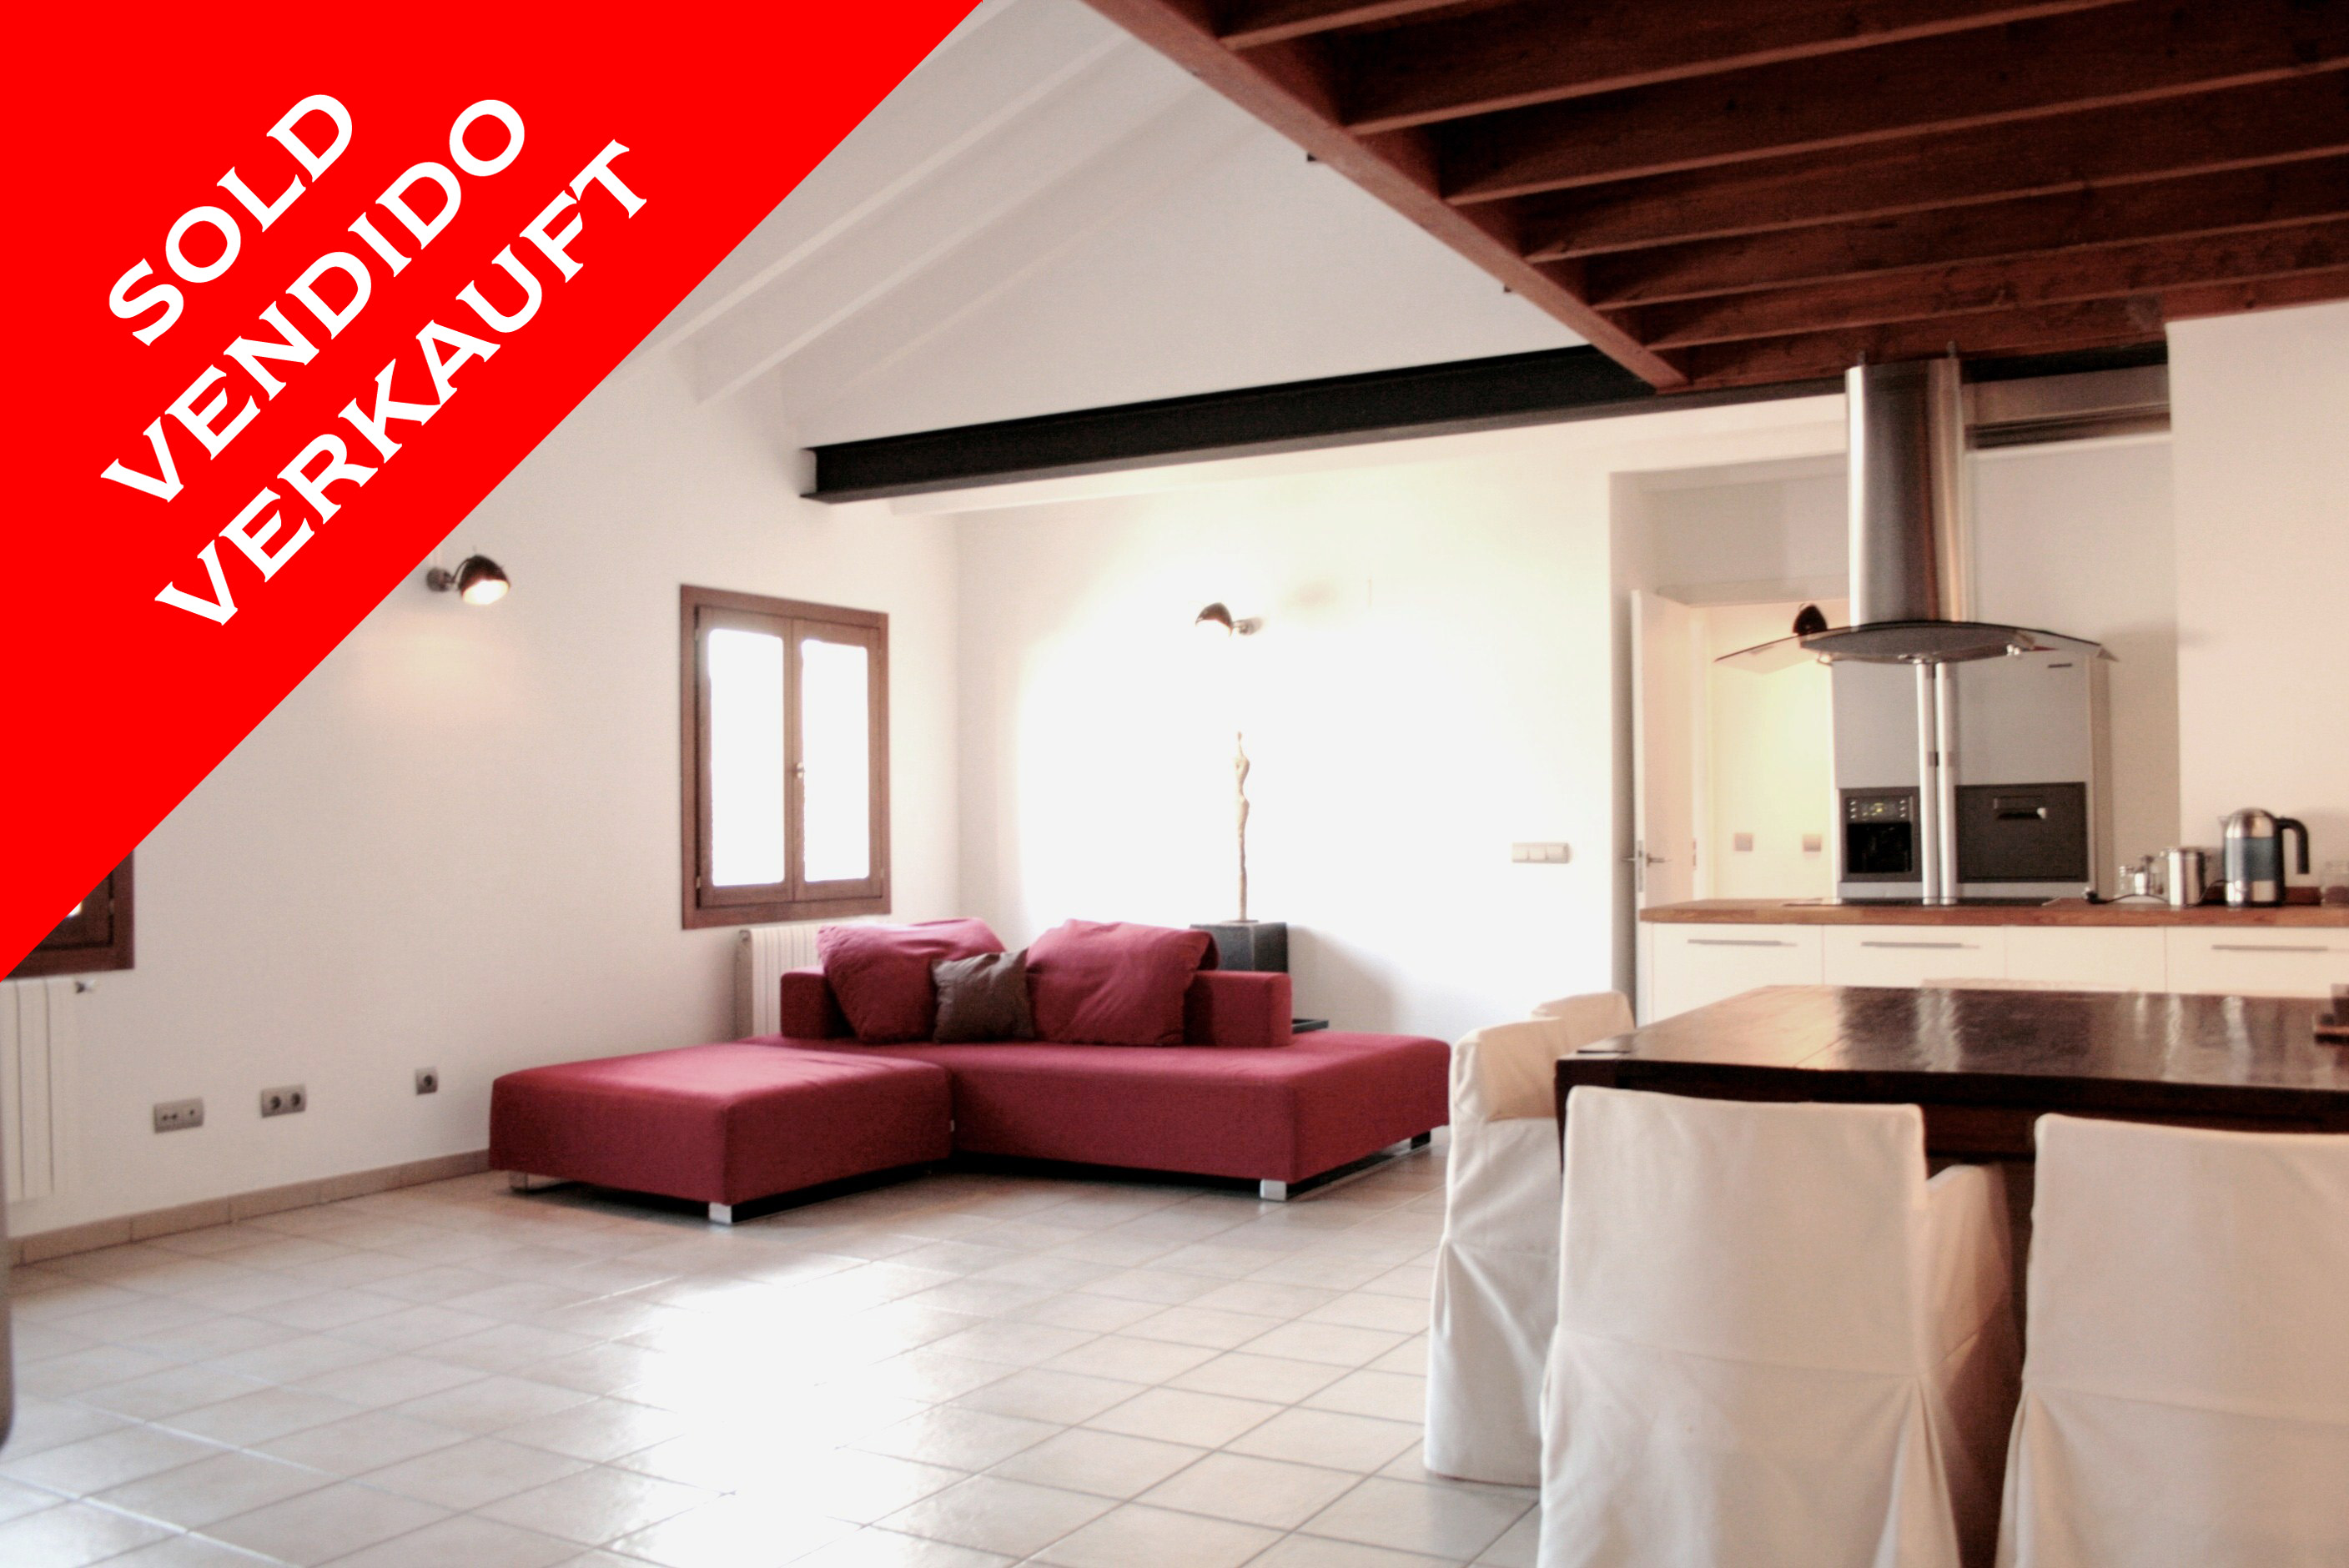 Palma - Modern maisonette apartment with terrace. Sold!